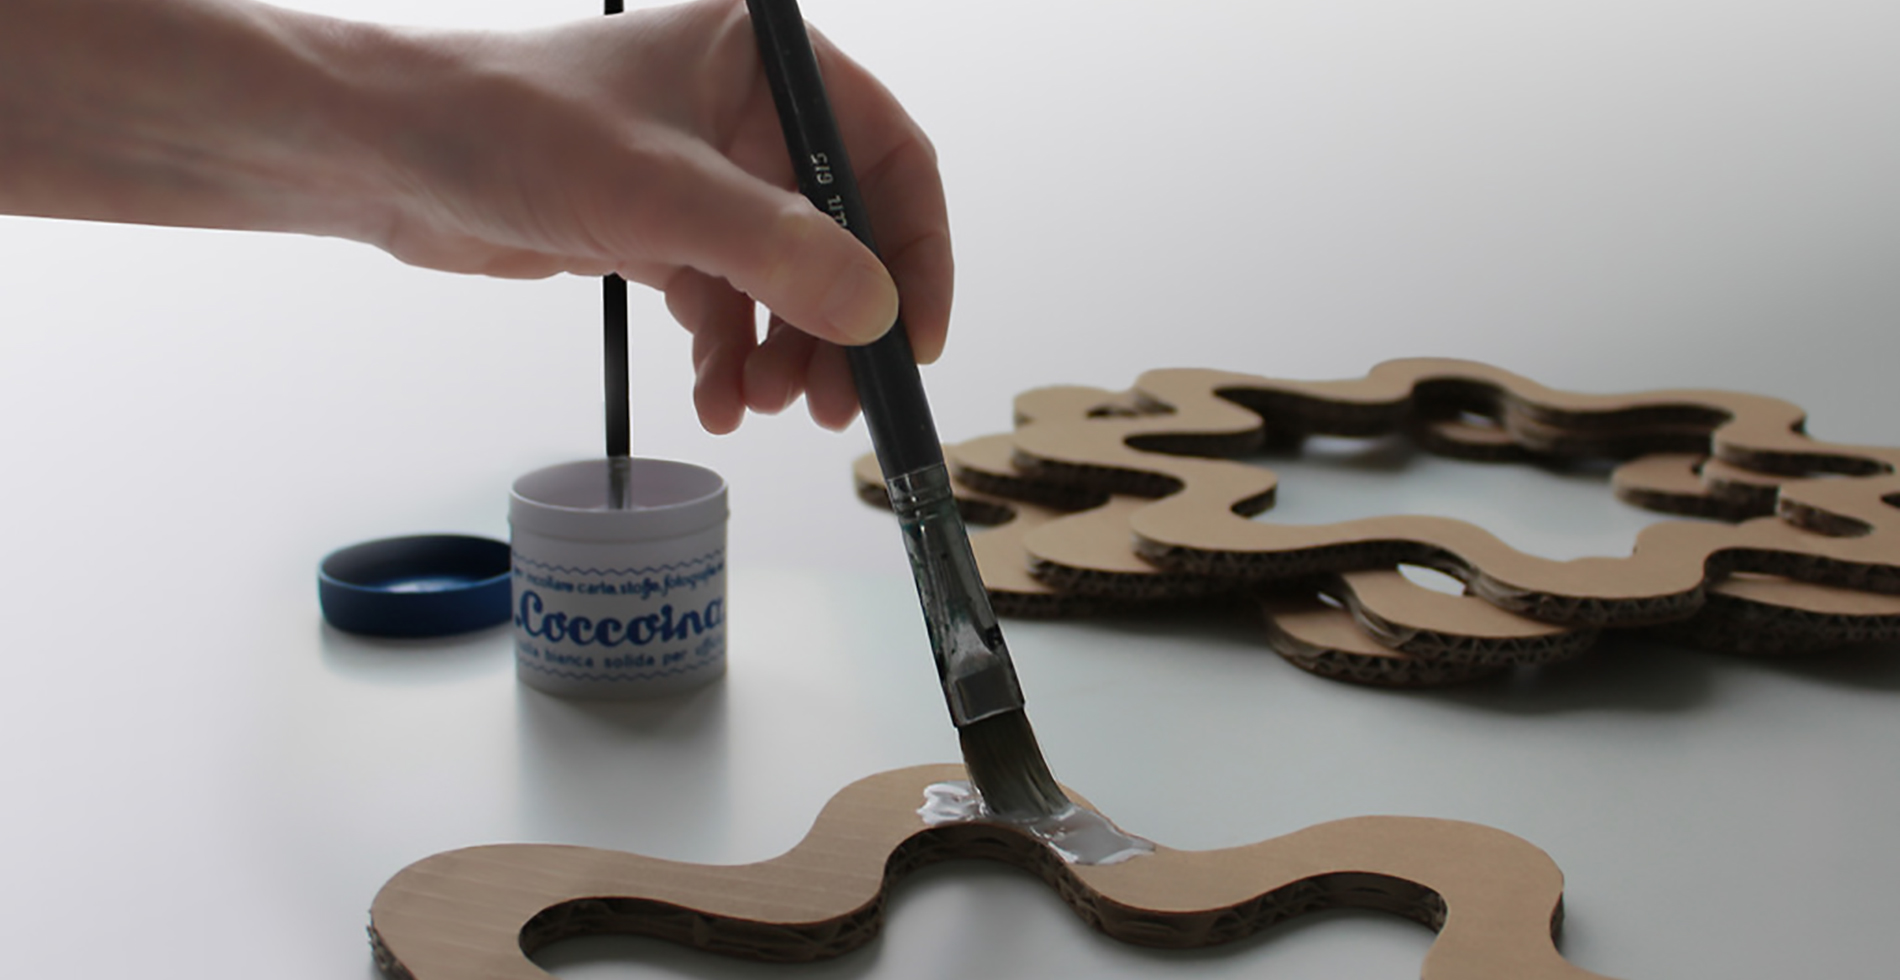 Artisan recycled cardboard | Sustainable design by Antonio Pascale for eetico - Made in Italy